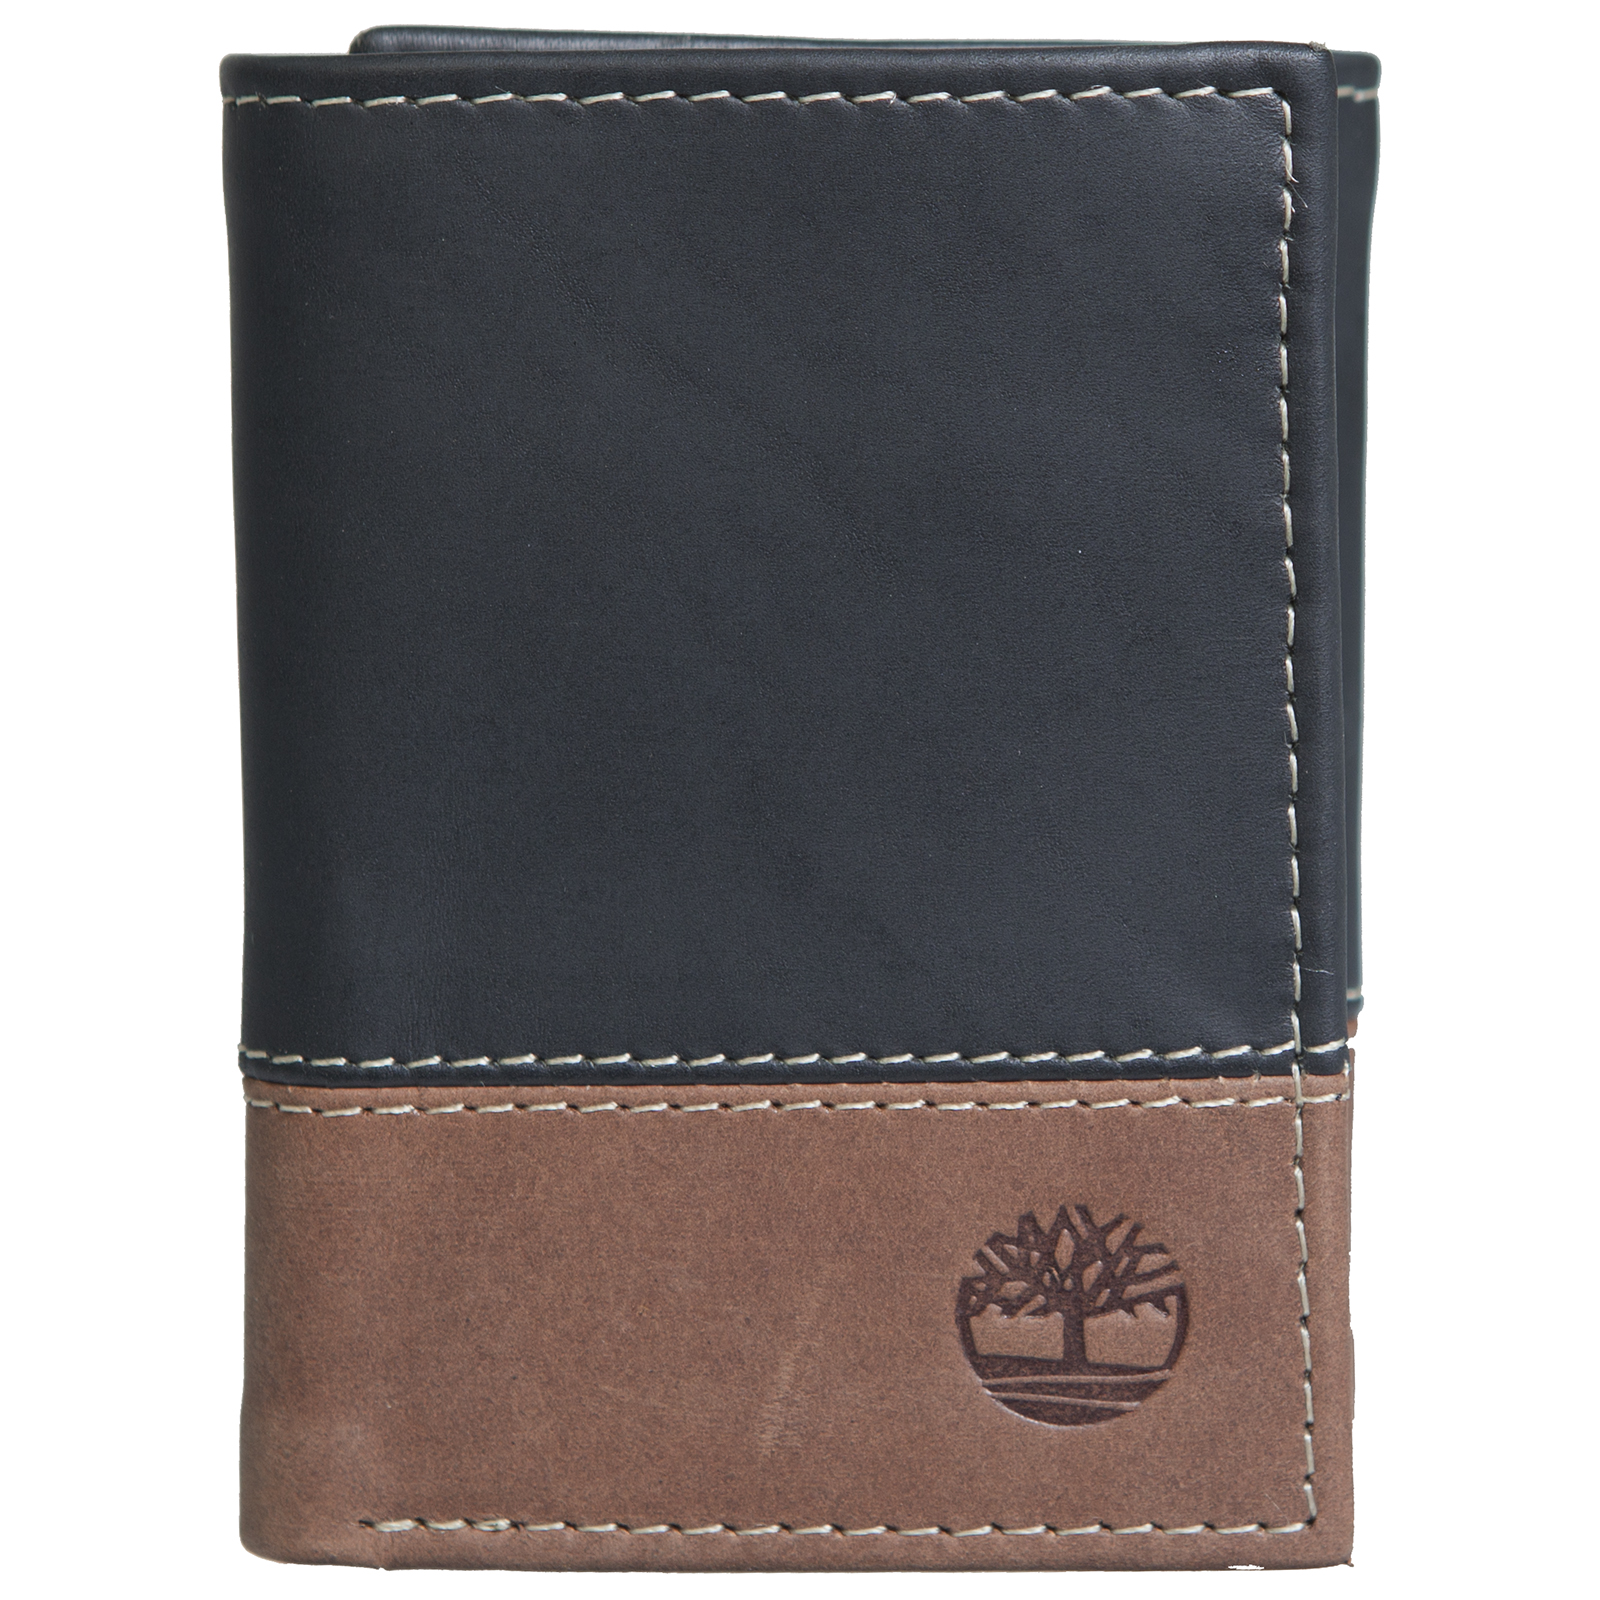 Timberland Mens Wallet Trifold Genuine Leather Separated Double Bill Section New